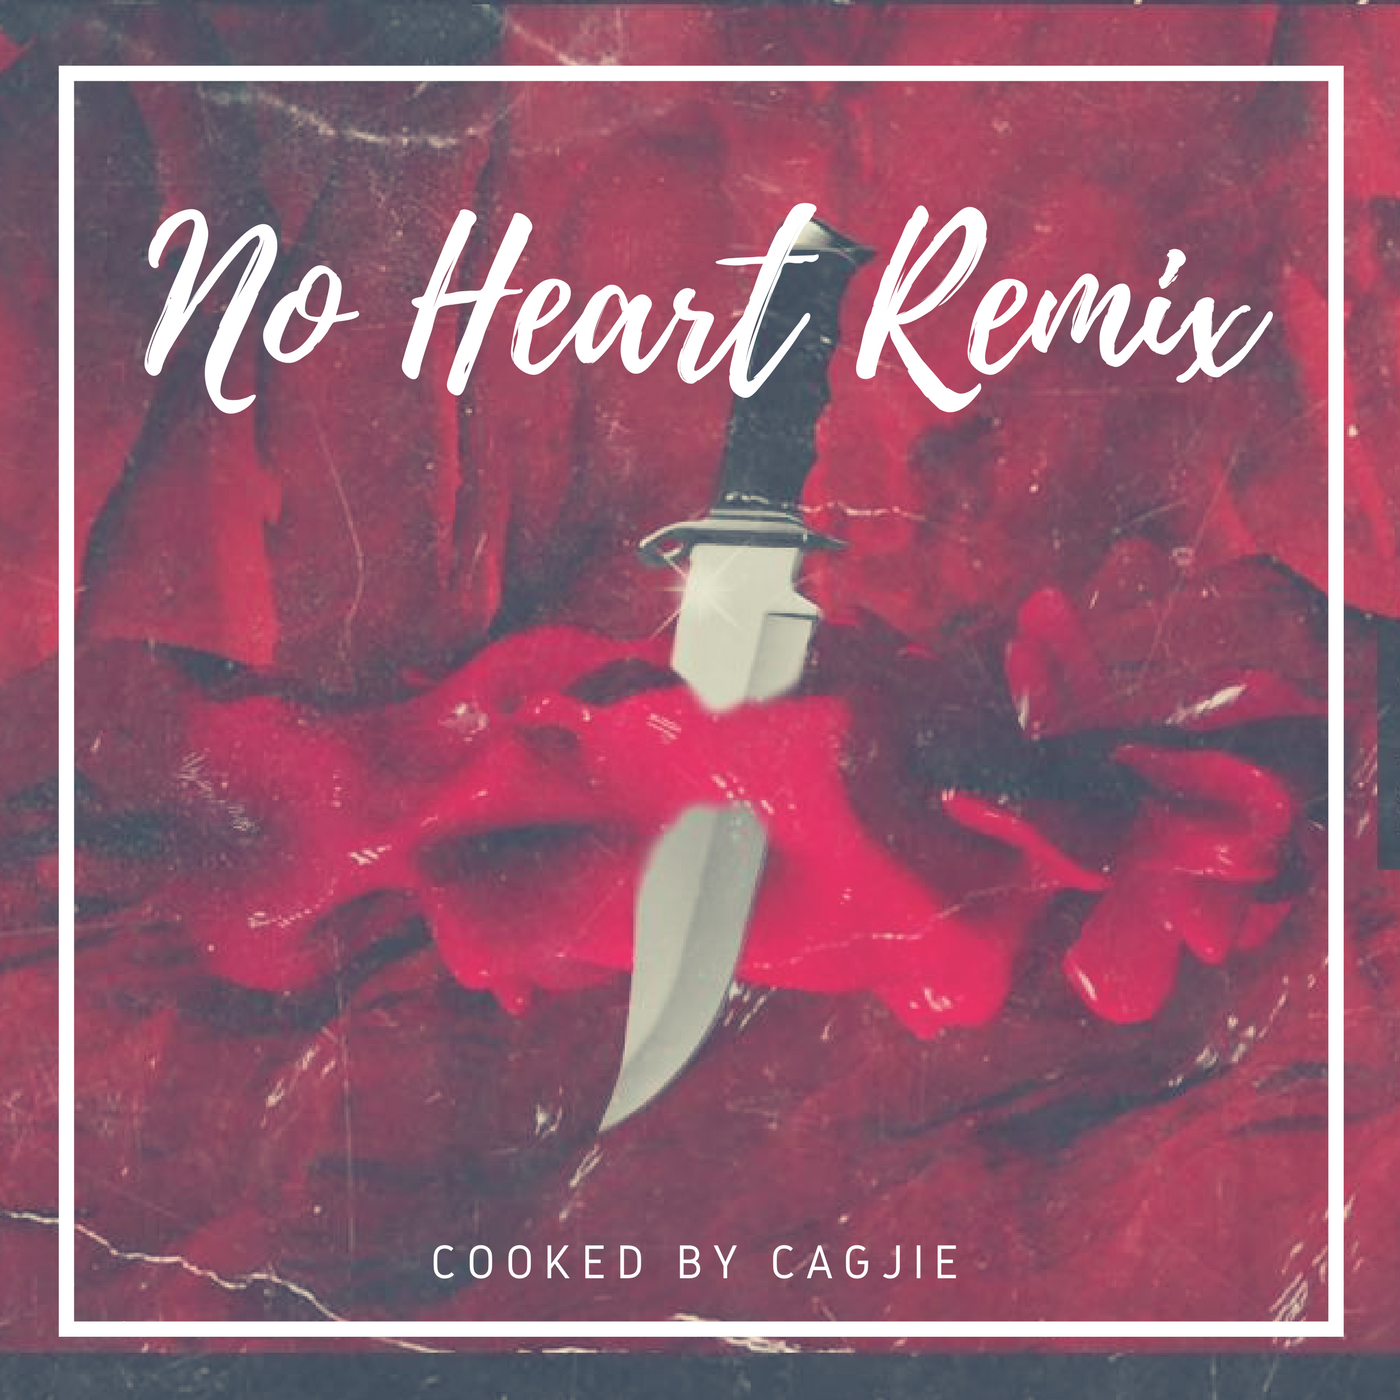 No Heart Remix (Cooked by Cagjie) by 21 Savage from Chris Cash